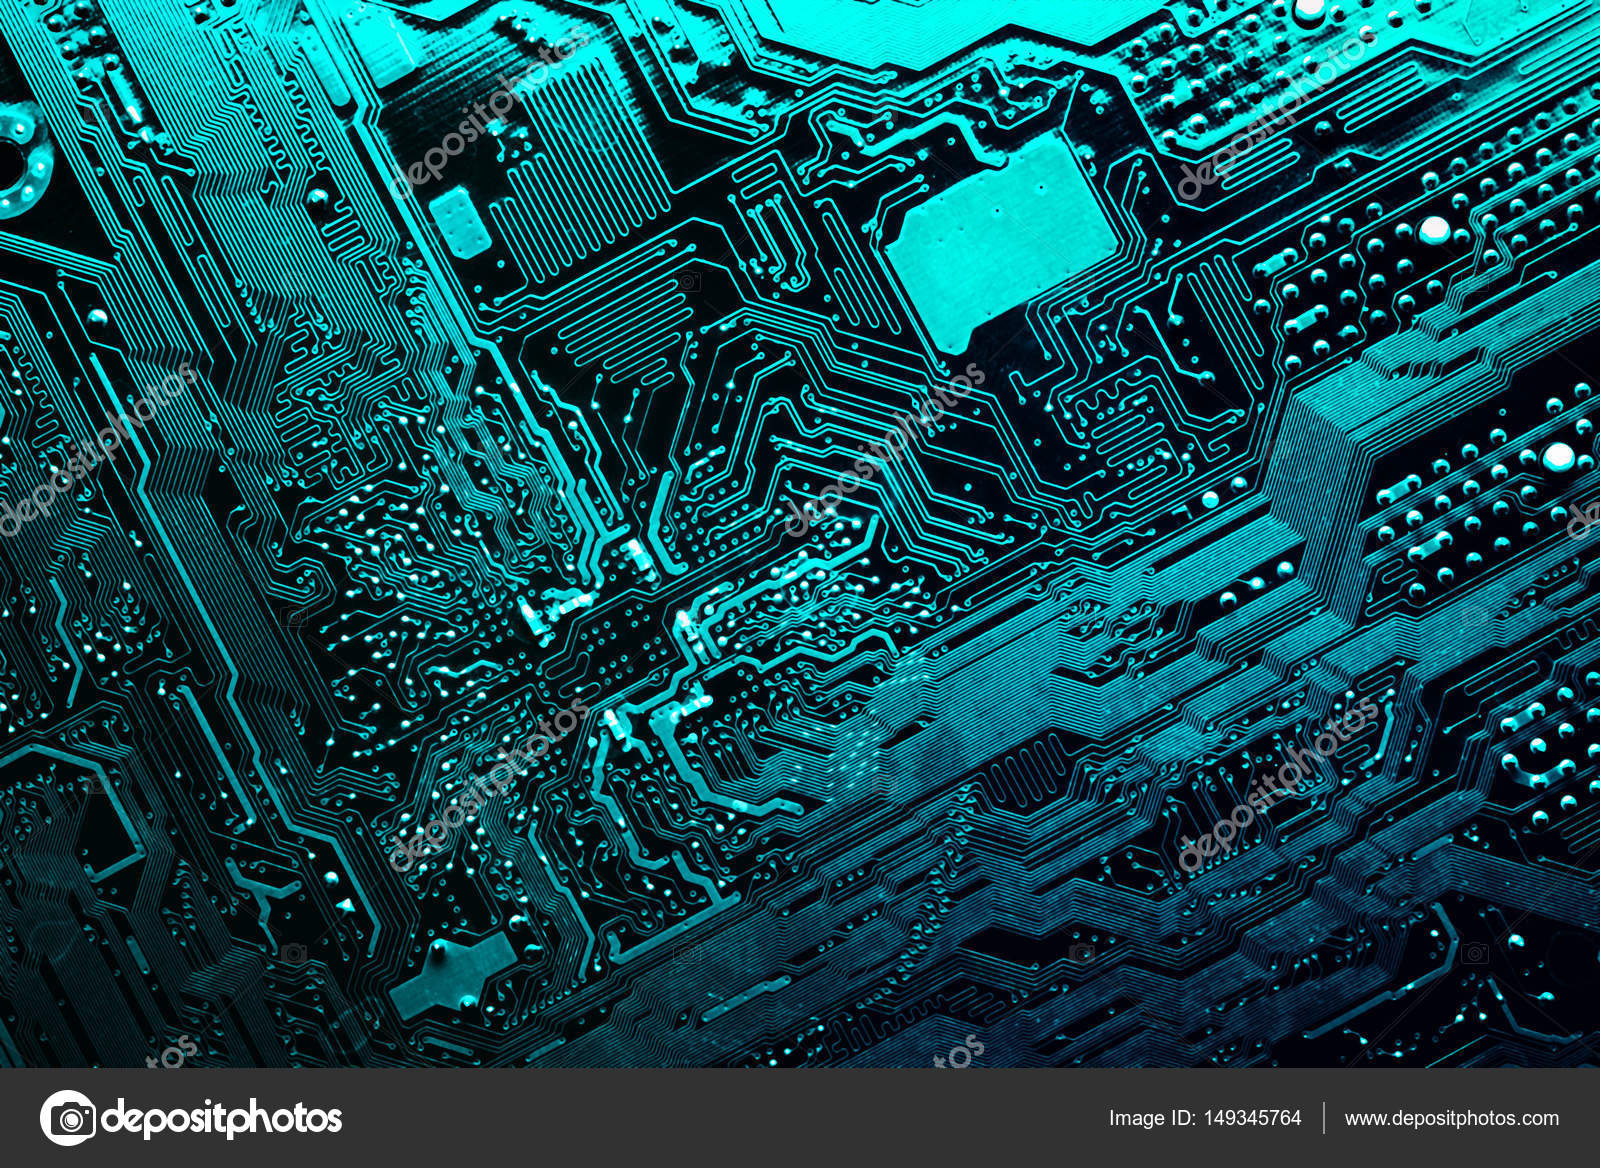 Circuit Board Electronic Computer Hardware Technology Motherboard Green Background Chip Texture Digital Tech Science Integrated Communication Processor